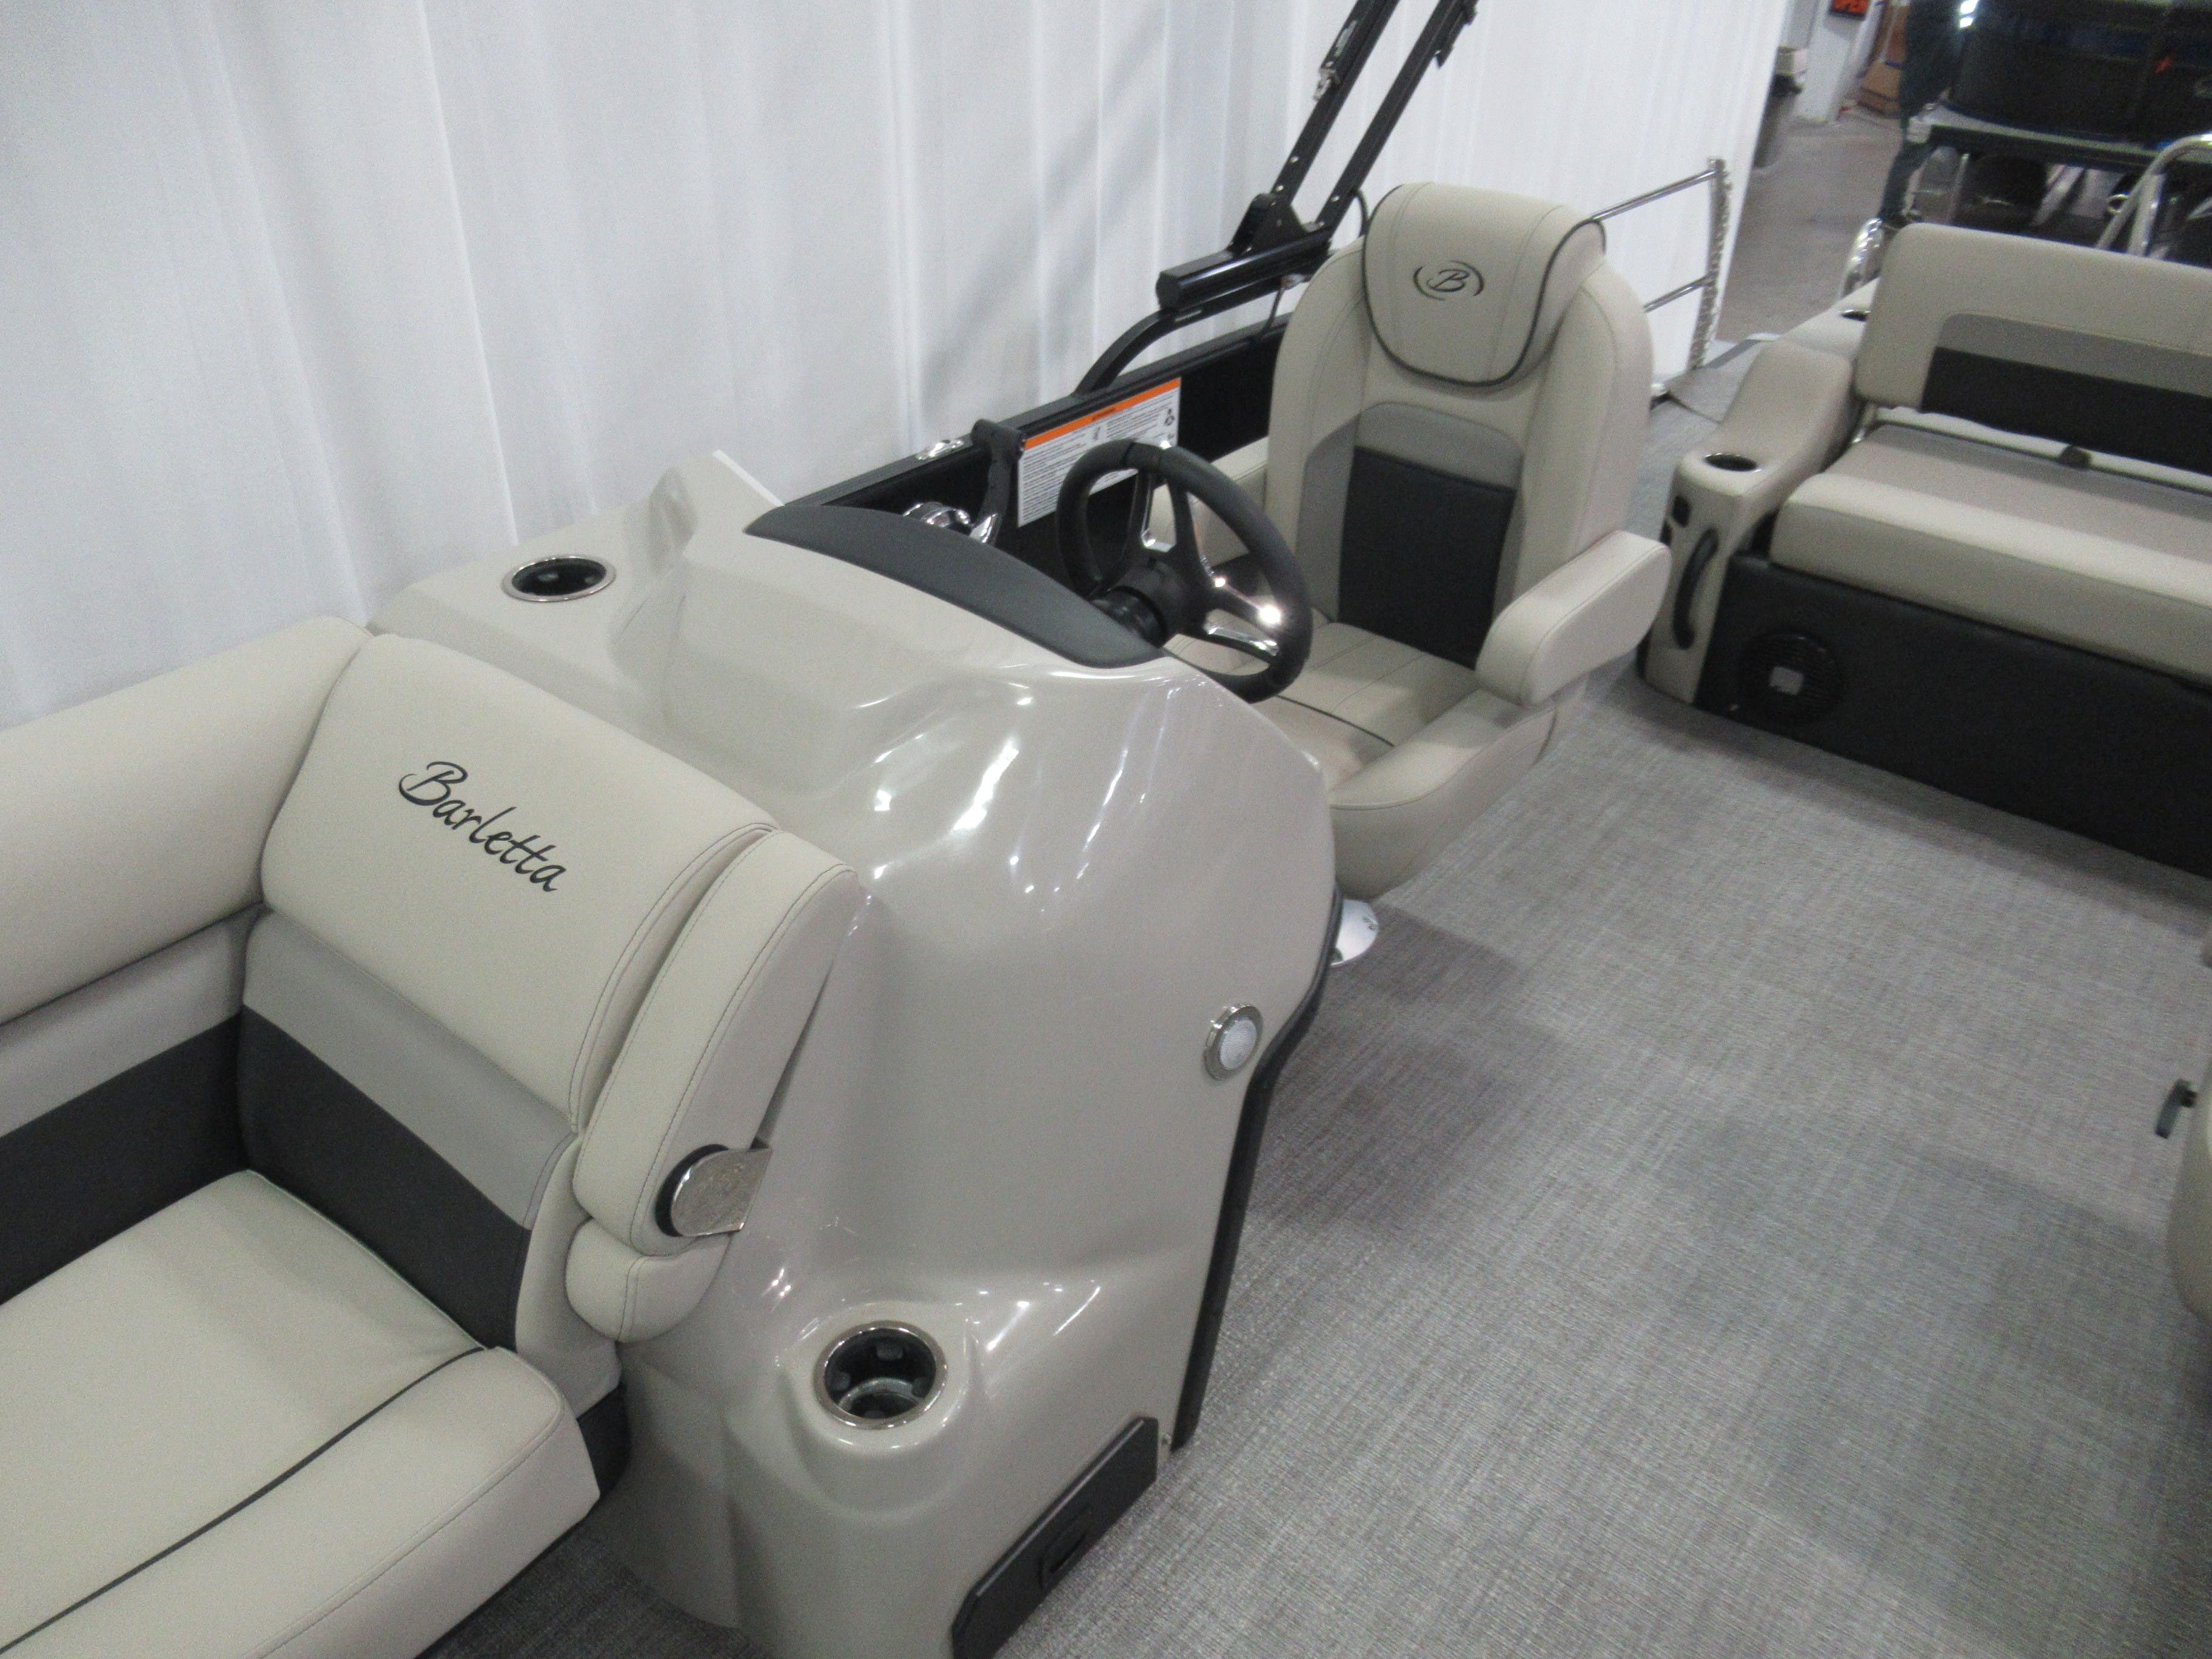 2021 Barletta boat for sale, model of the boat is C24uc & Image # 7 of 11